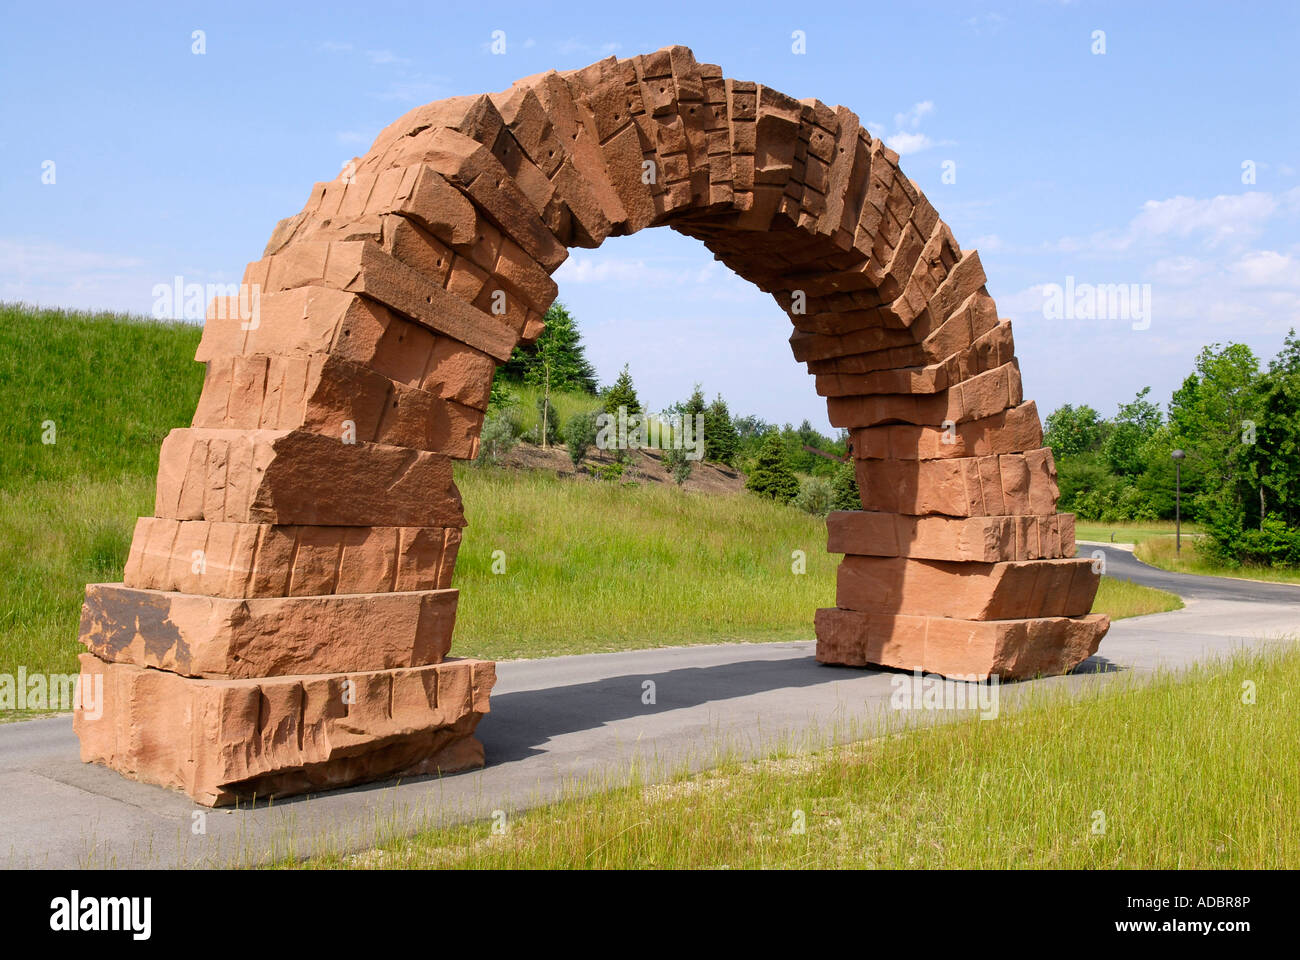 Grand rapids arch by andy goldsworthy at the frederik Meijer gardens grand rapids michigan